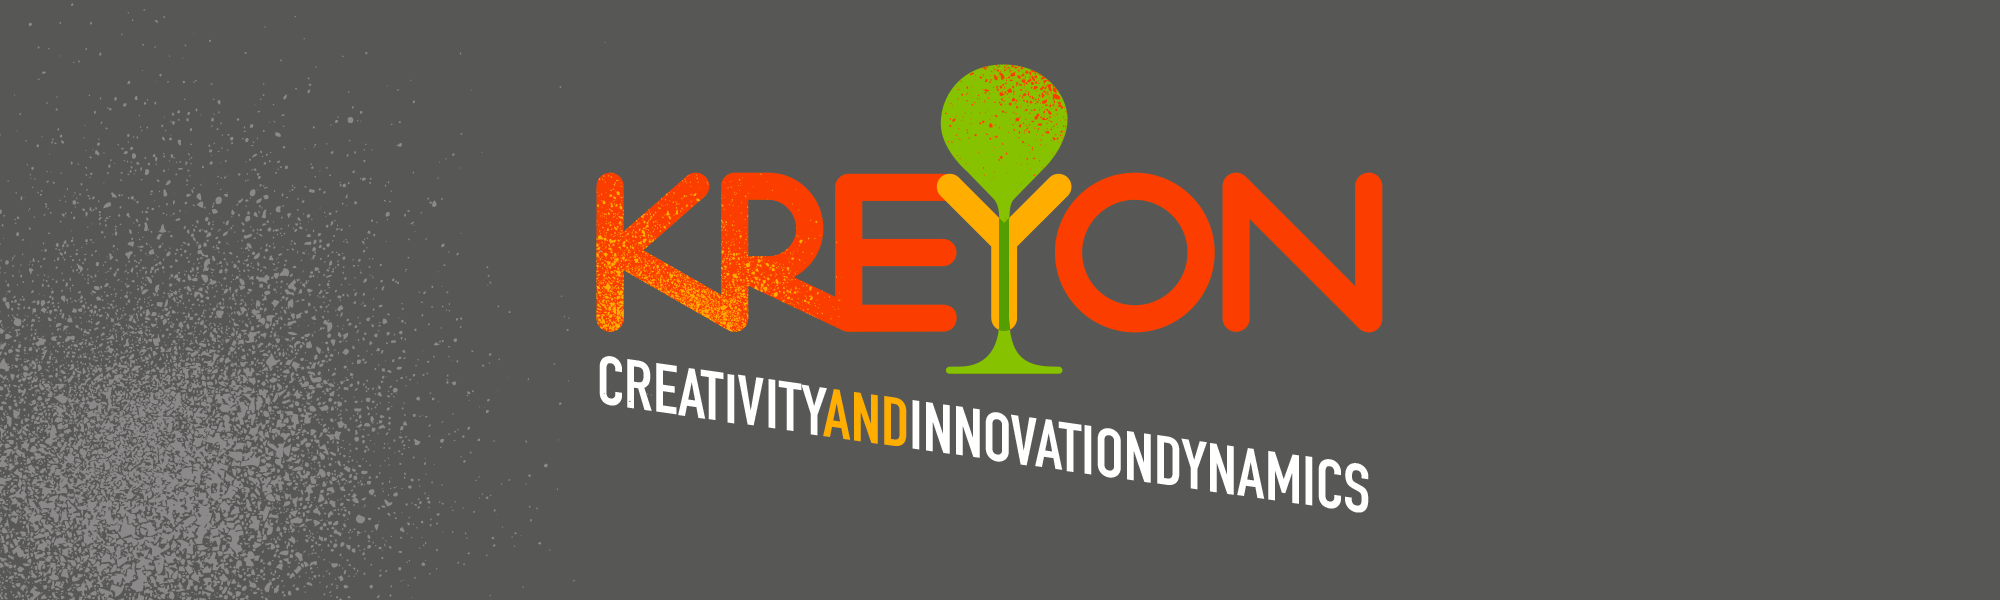 Kreyon Project - Creativity and Innovation Dynamics